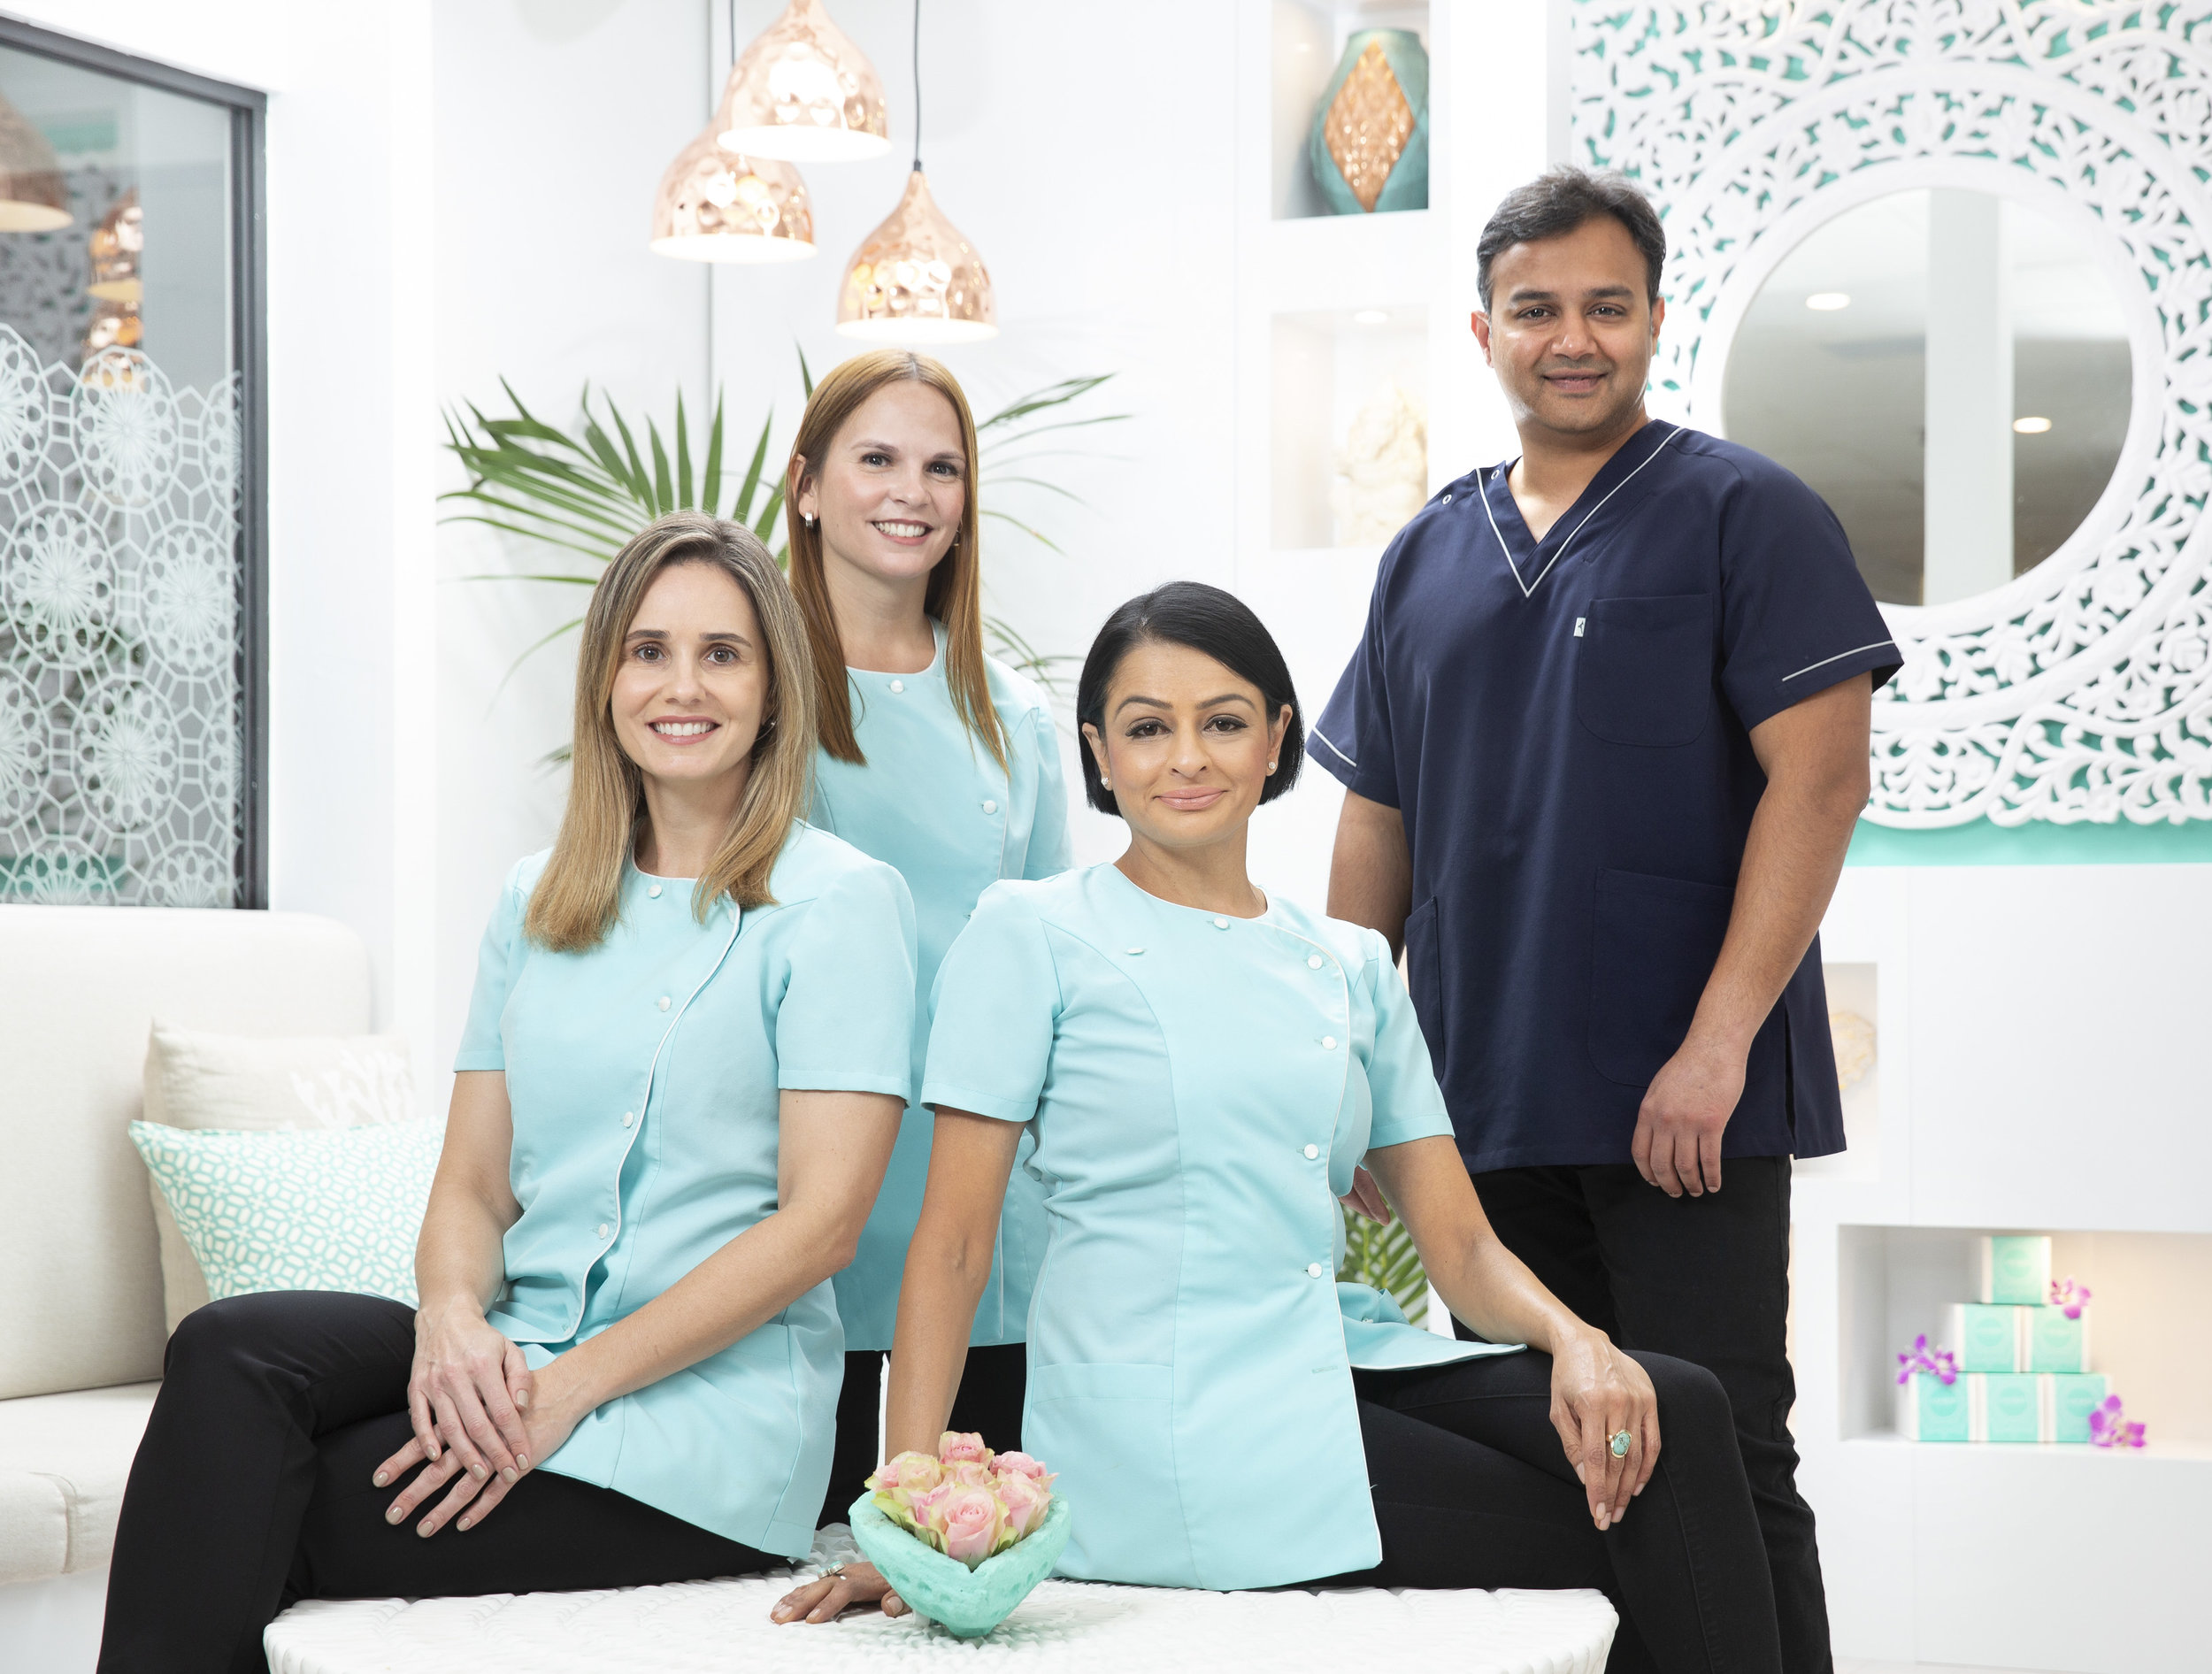 Welcome to Anokhi Dental - We are a holistic dental practice located in the heart of Sydney CBD